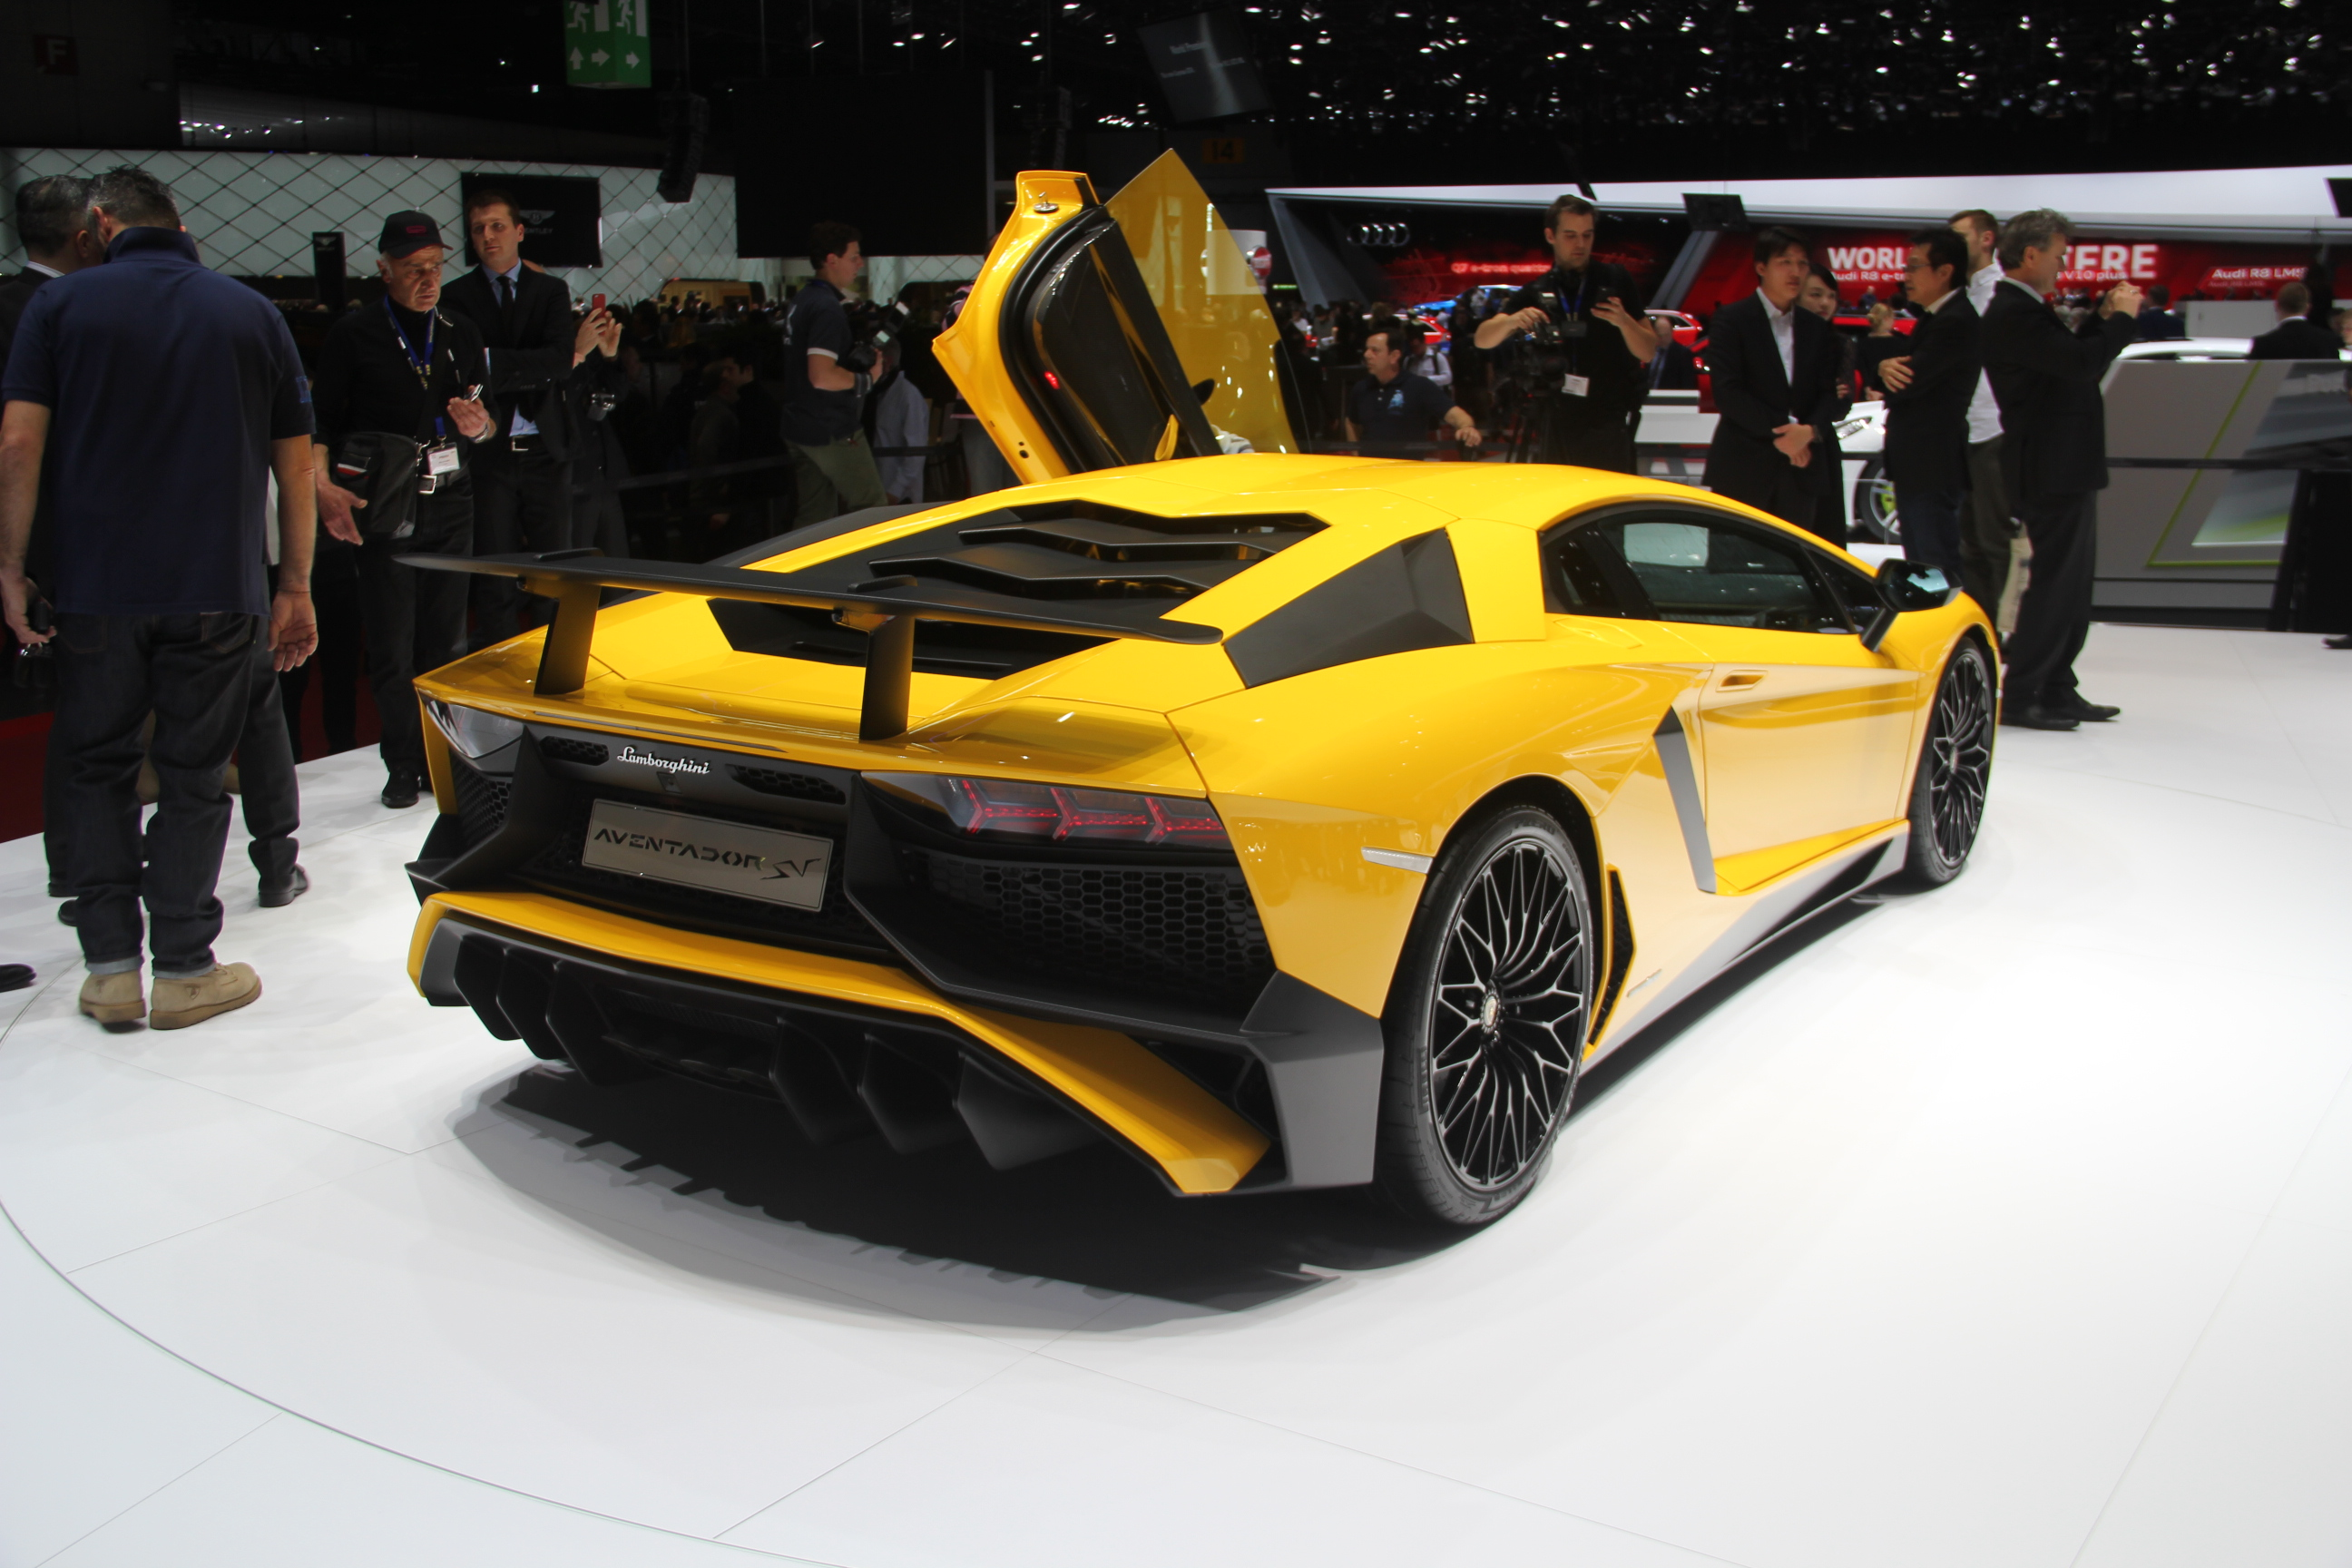 lamborghini aventador sv pour superveloce en direct du salon de gen ve 2015. Black Bedroom Furniture Sets. Home Design Ideas